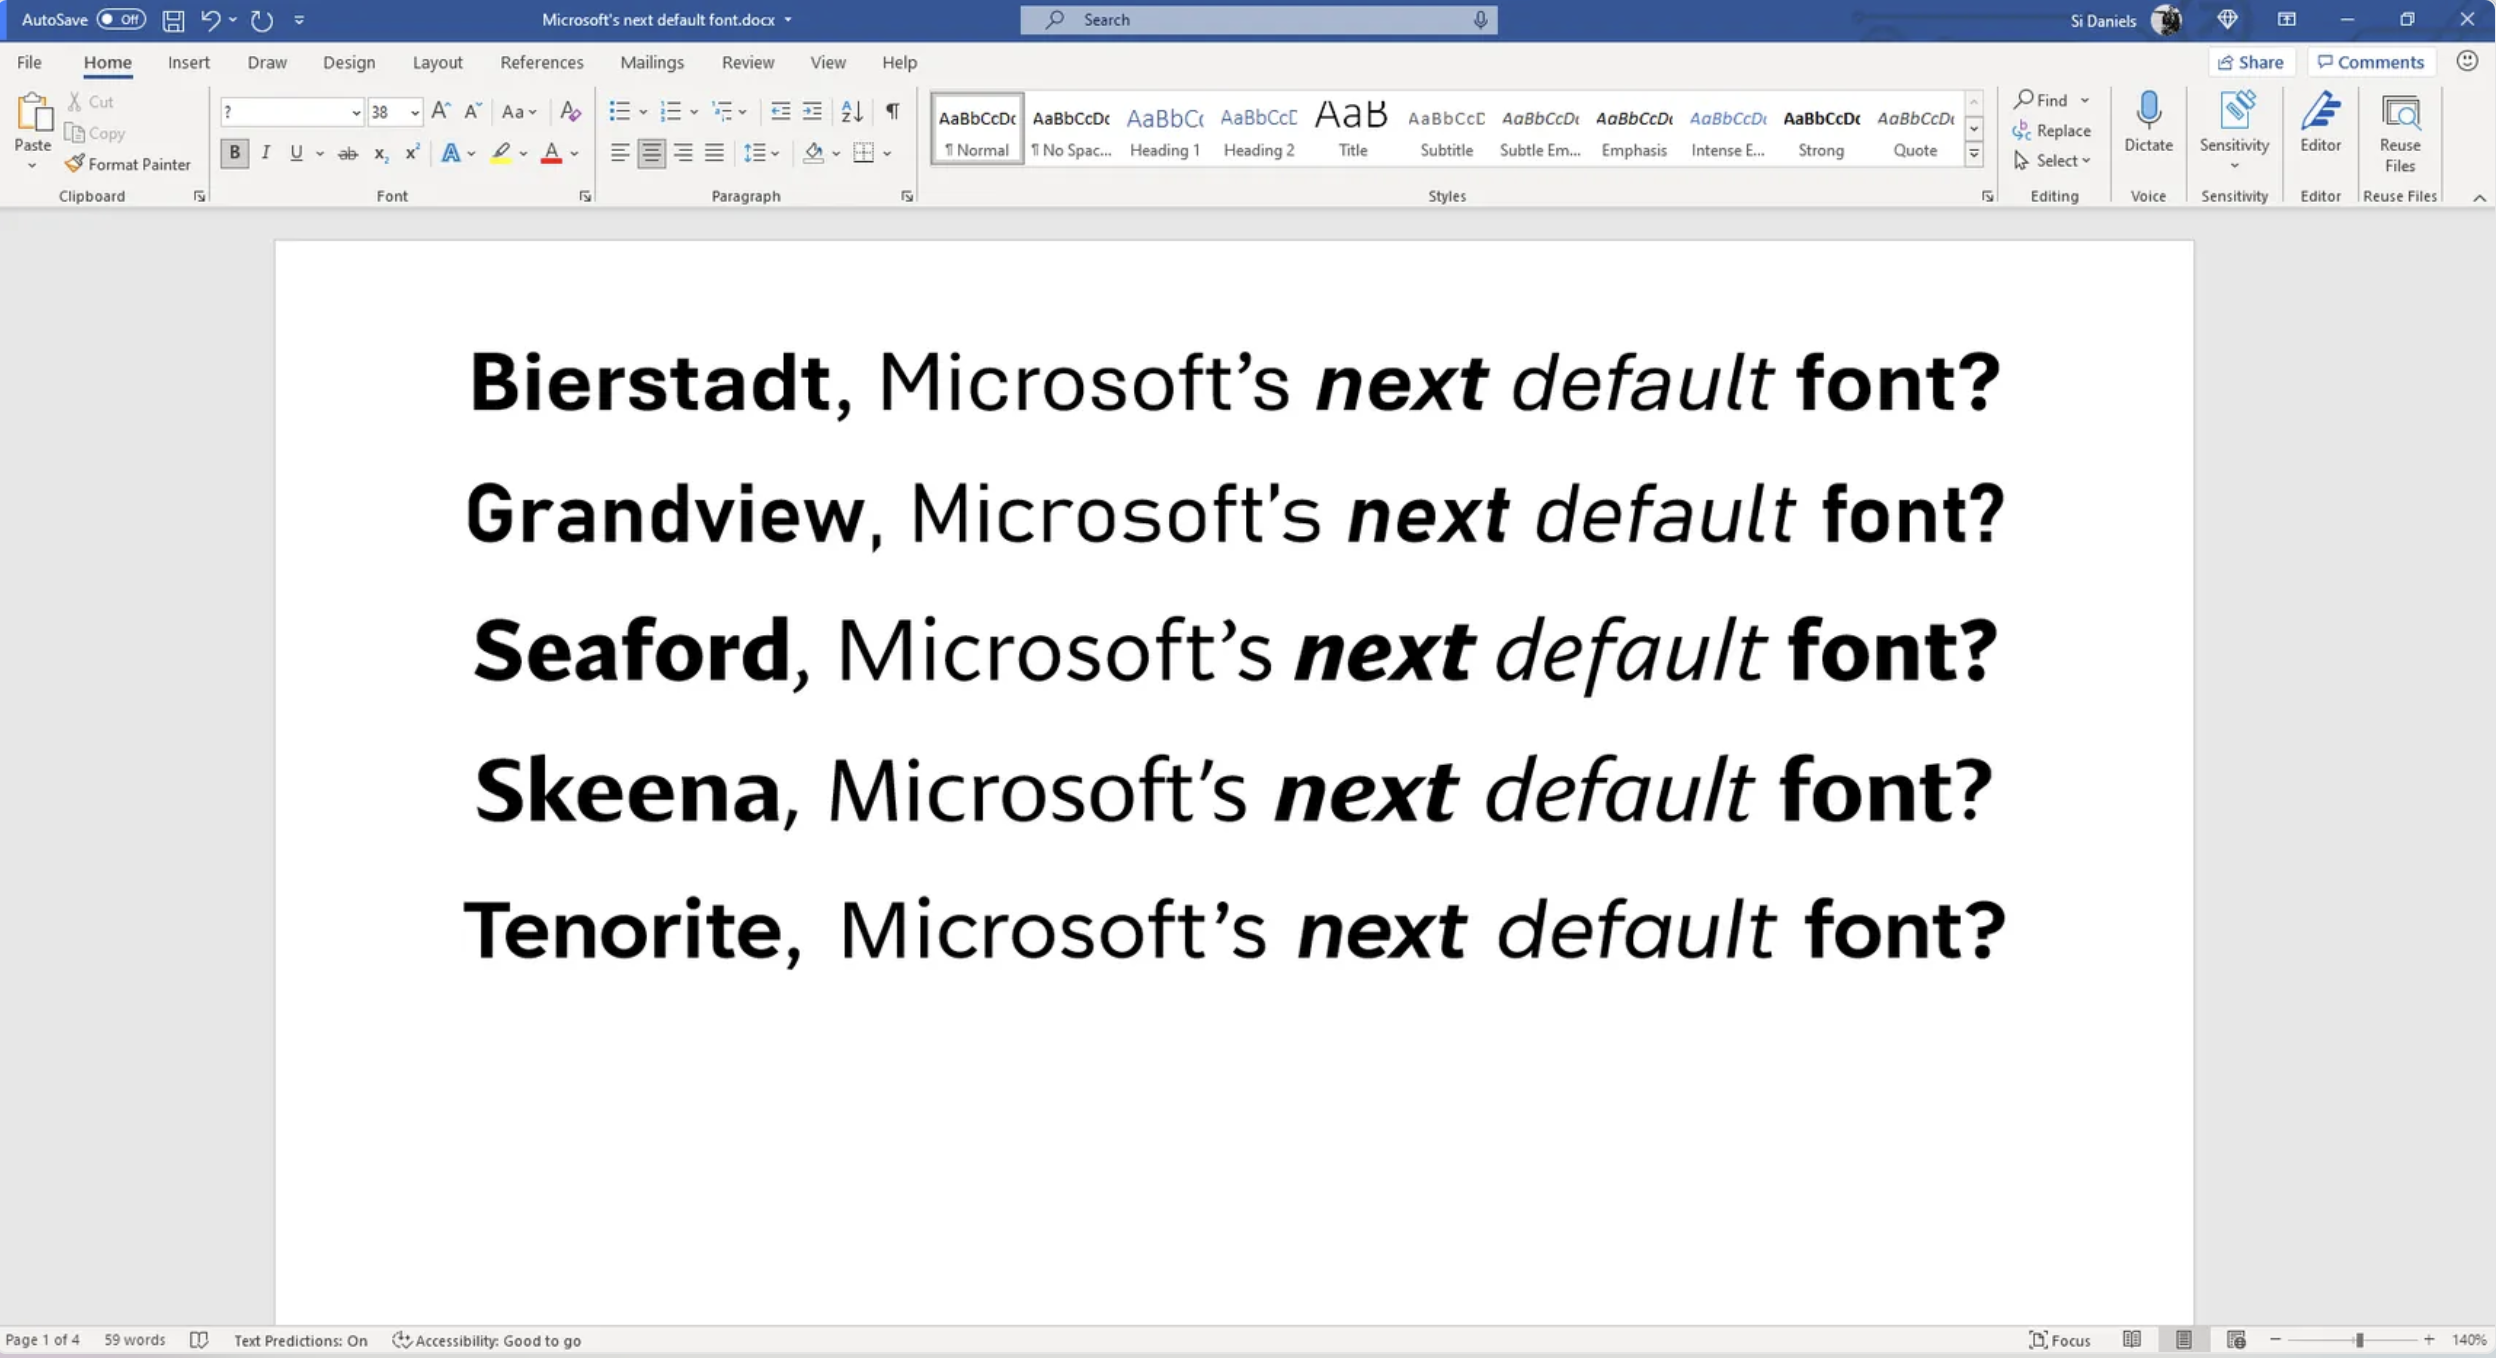 Say hello to the candidates hoping to get the final rose from the Microsoft Design Team.